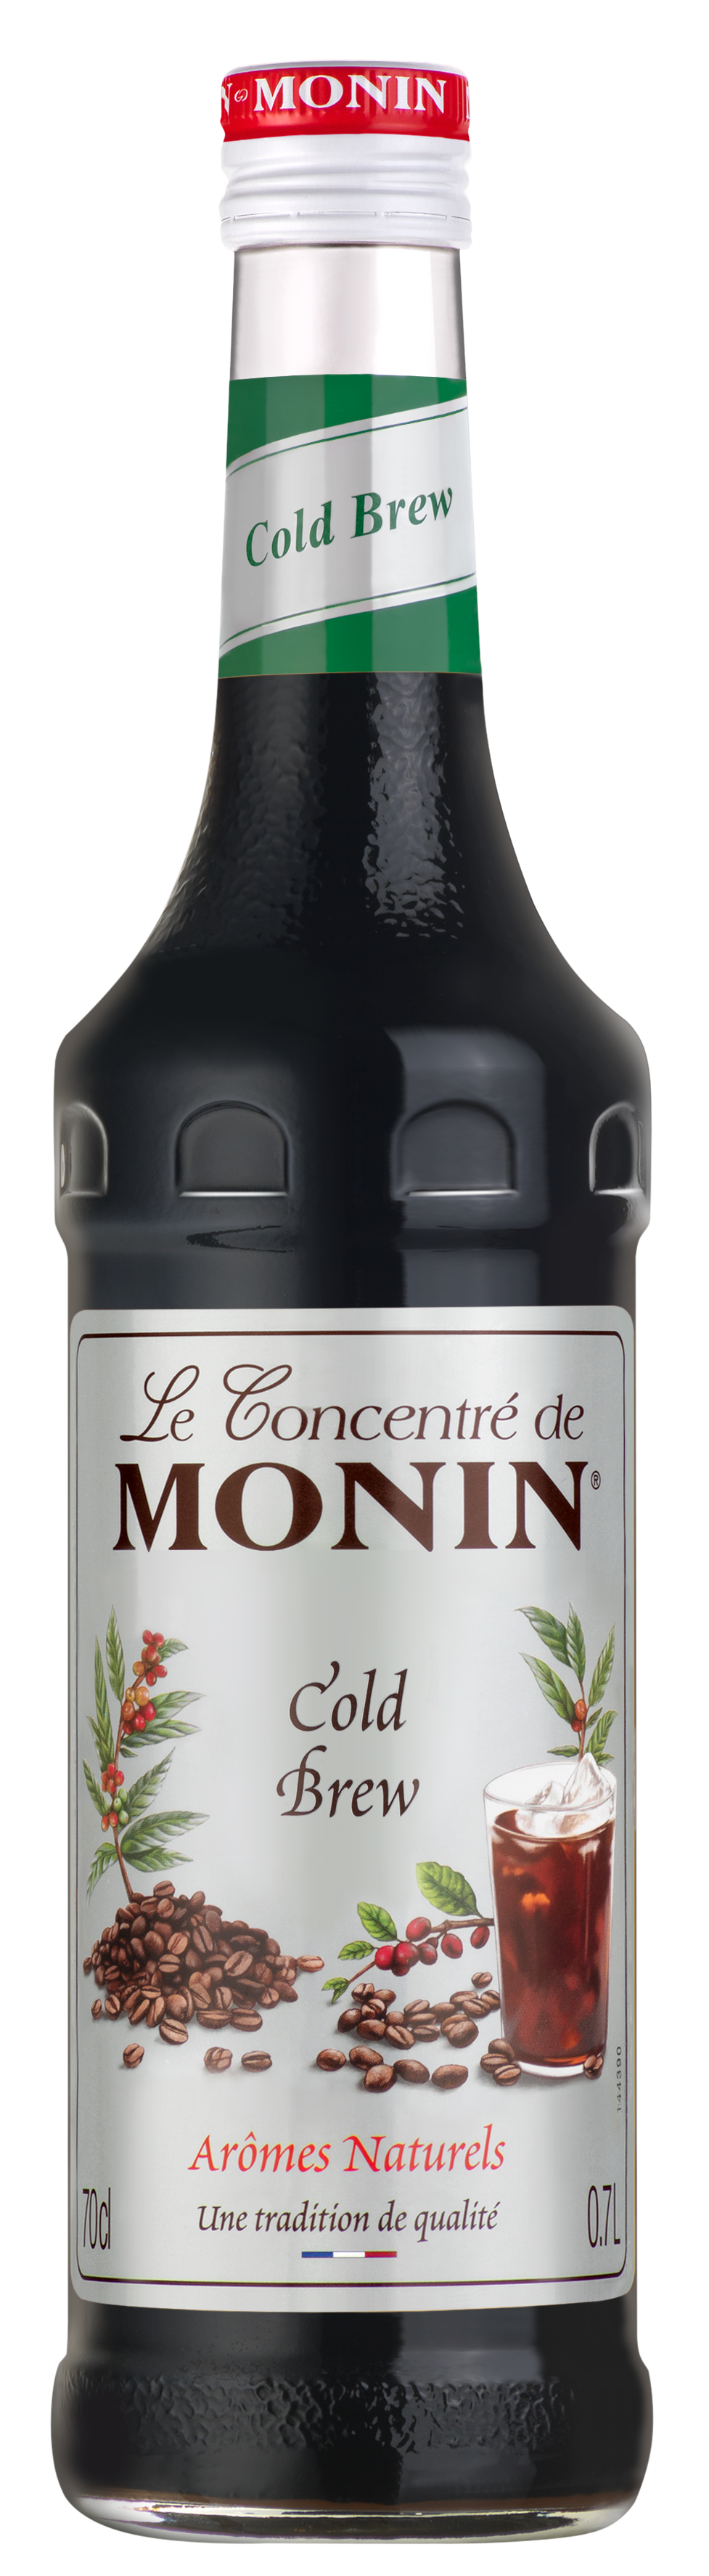 Concentré de Cold Brew, Monin (70 cl)